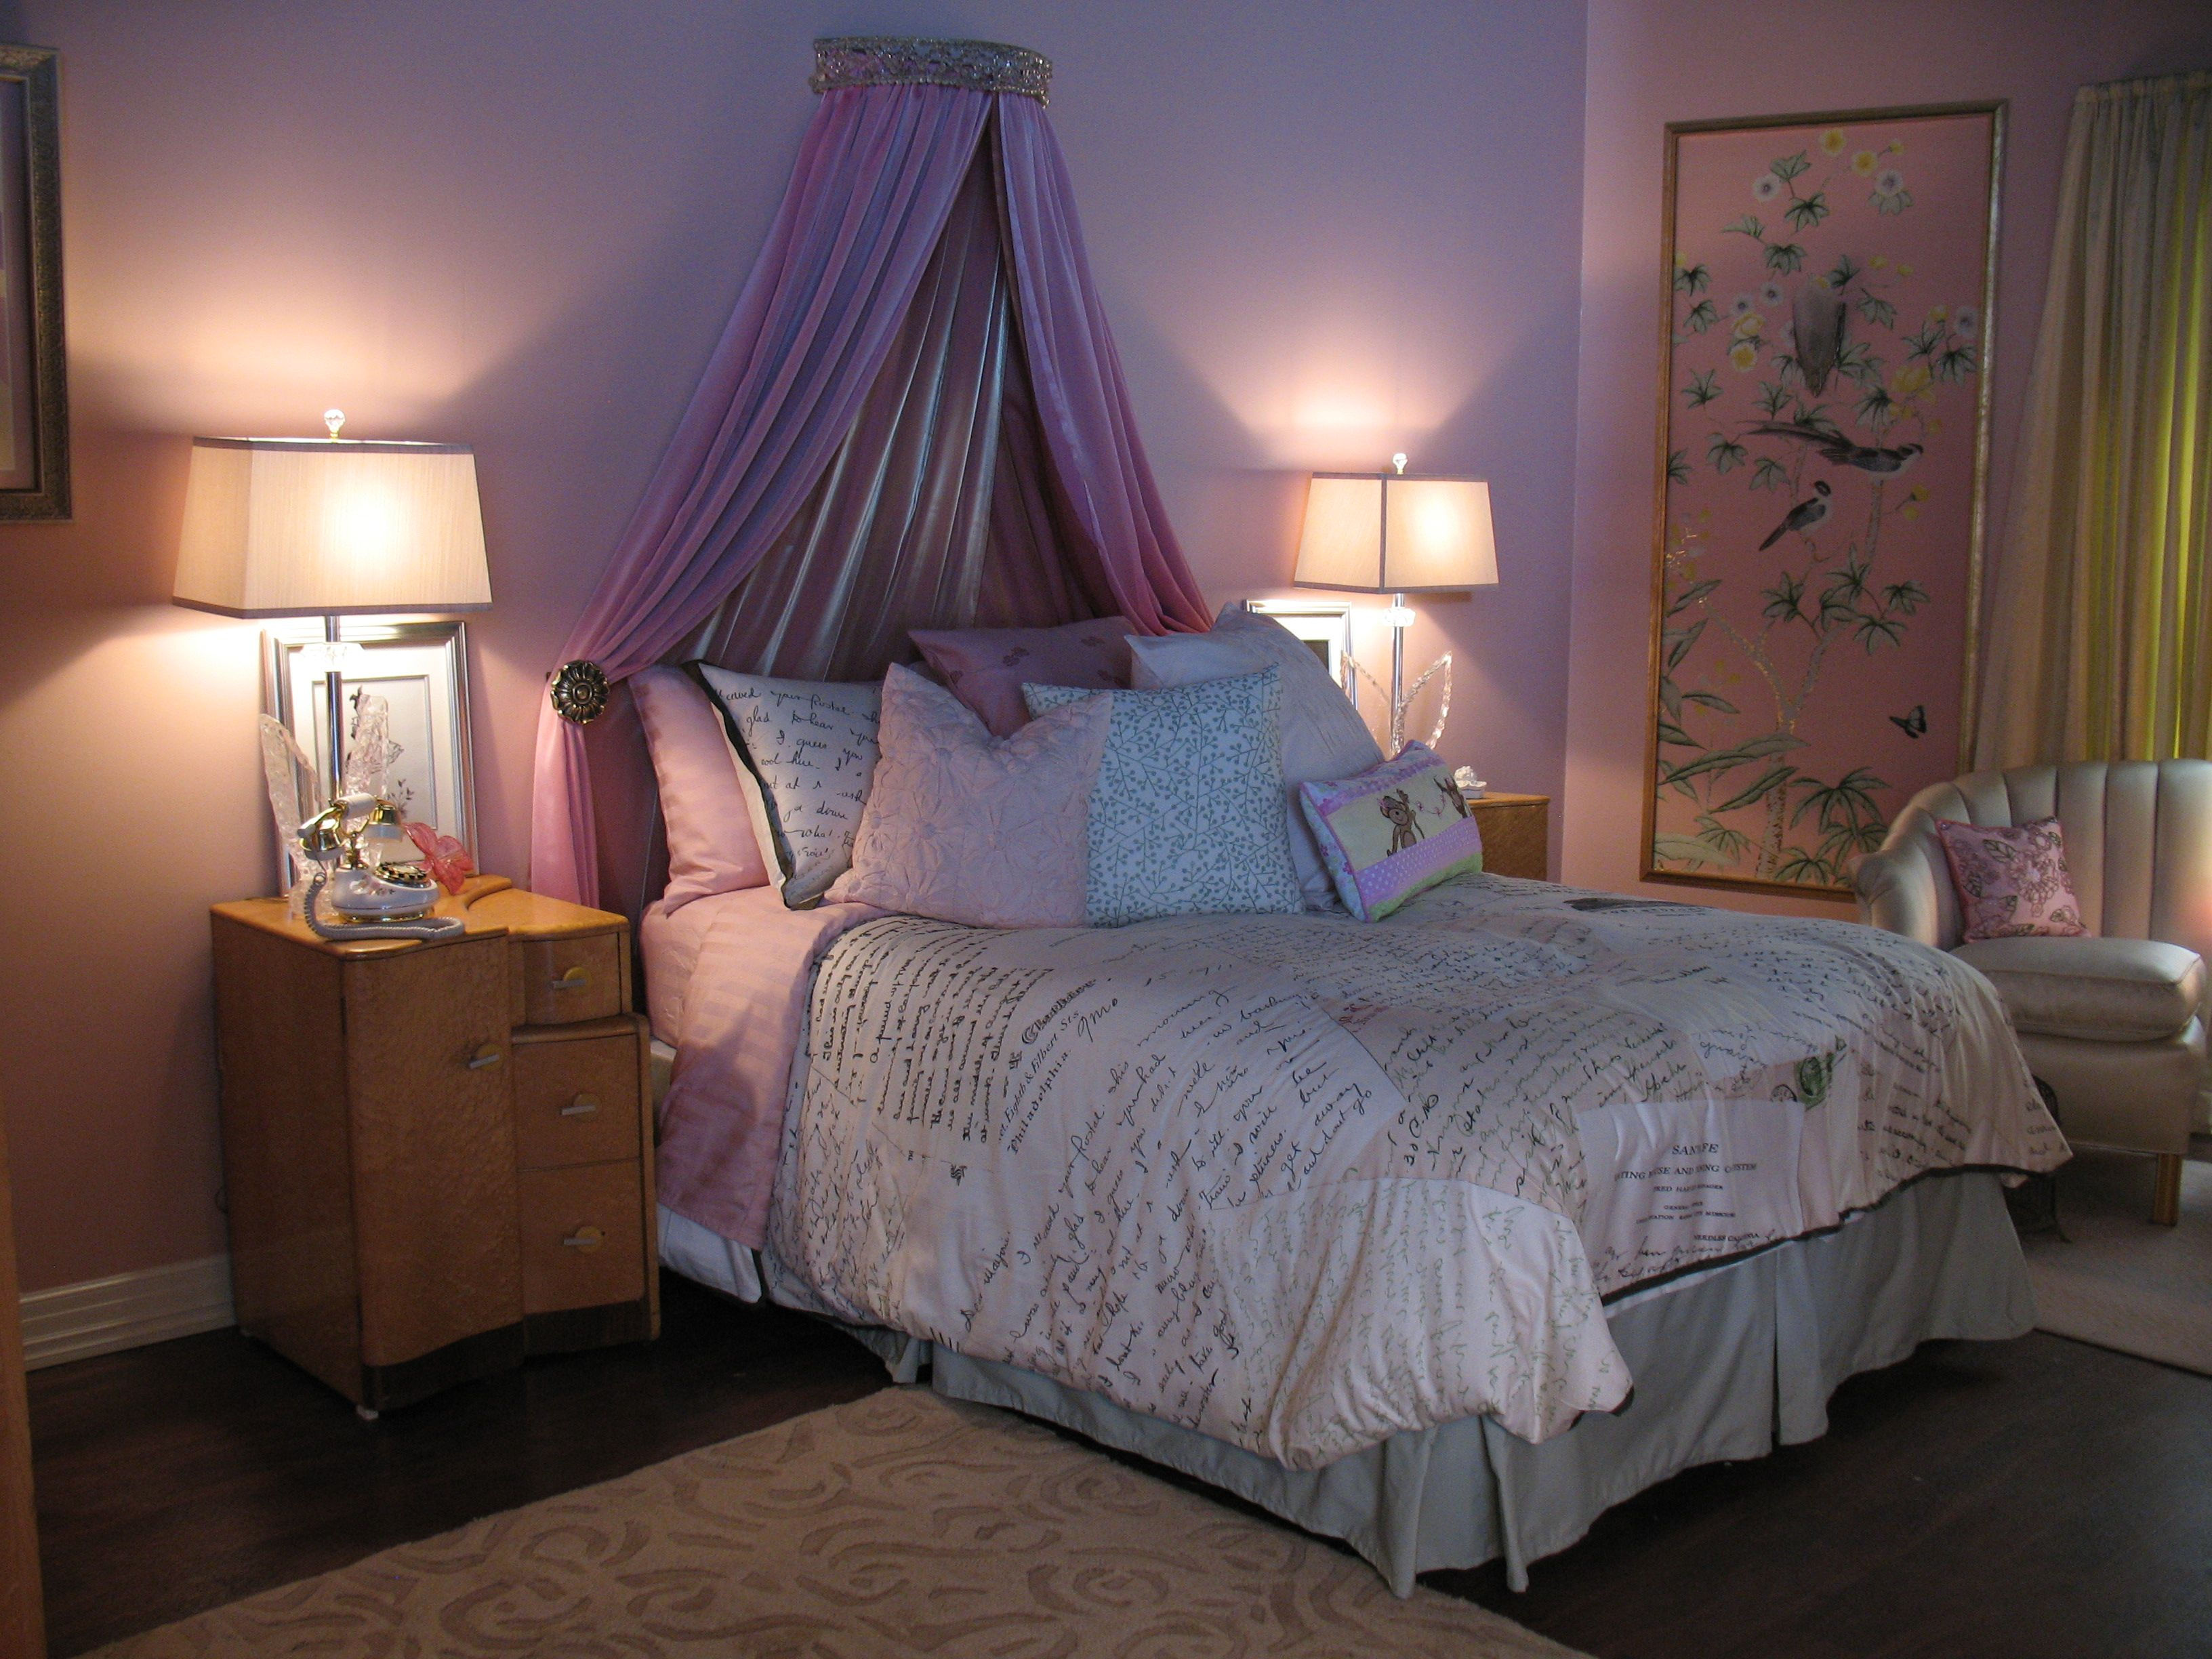 Prinzessinnen Schlafzimmer We Love Ali 39s Bed Pretty Little Liars Ali 39s Bedroom